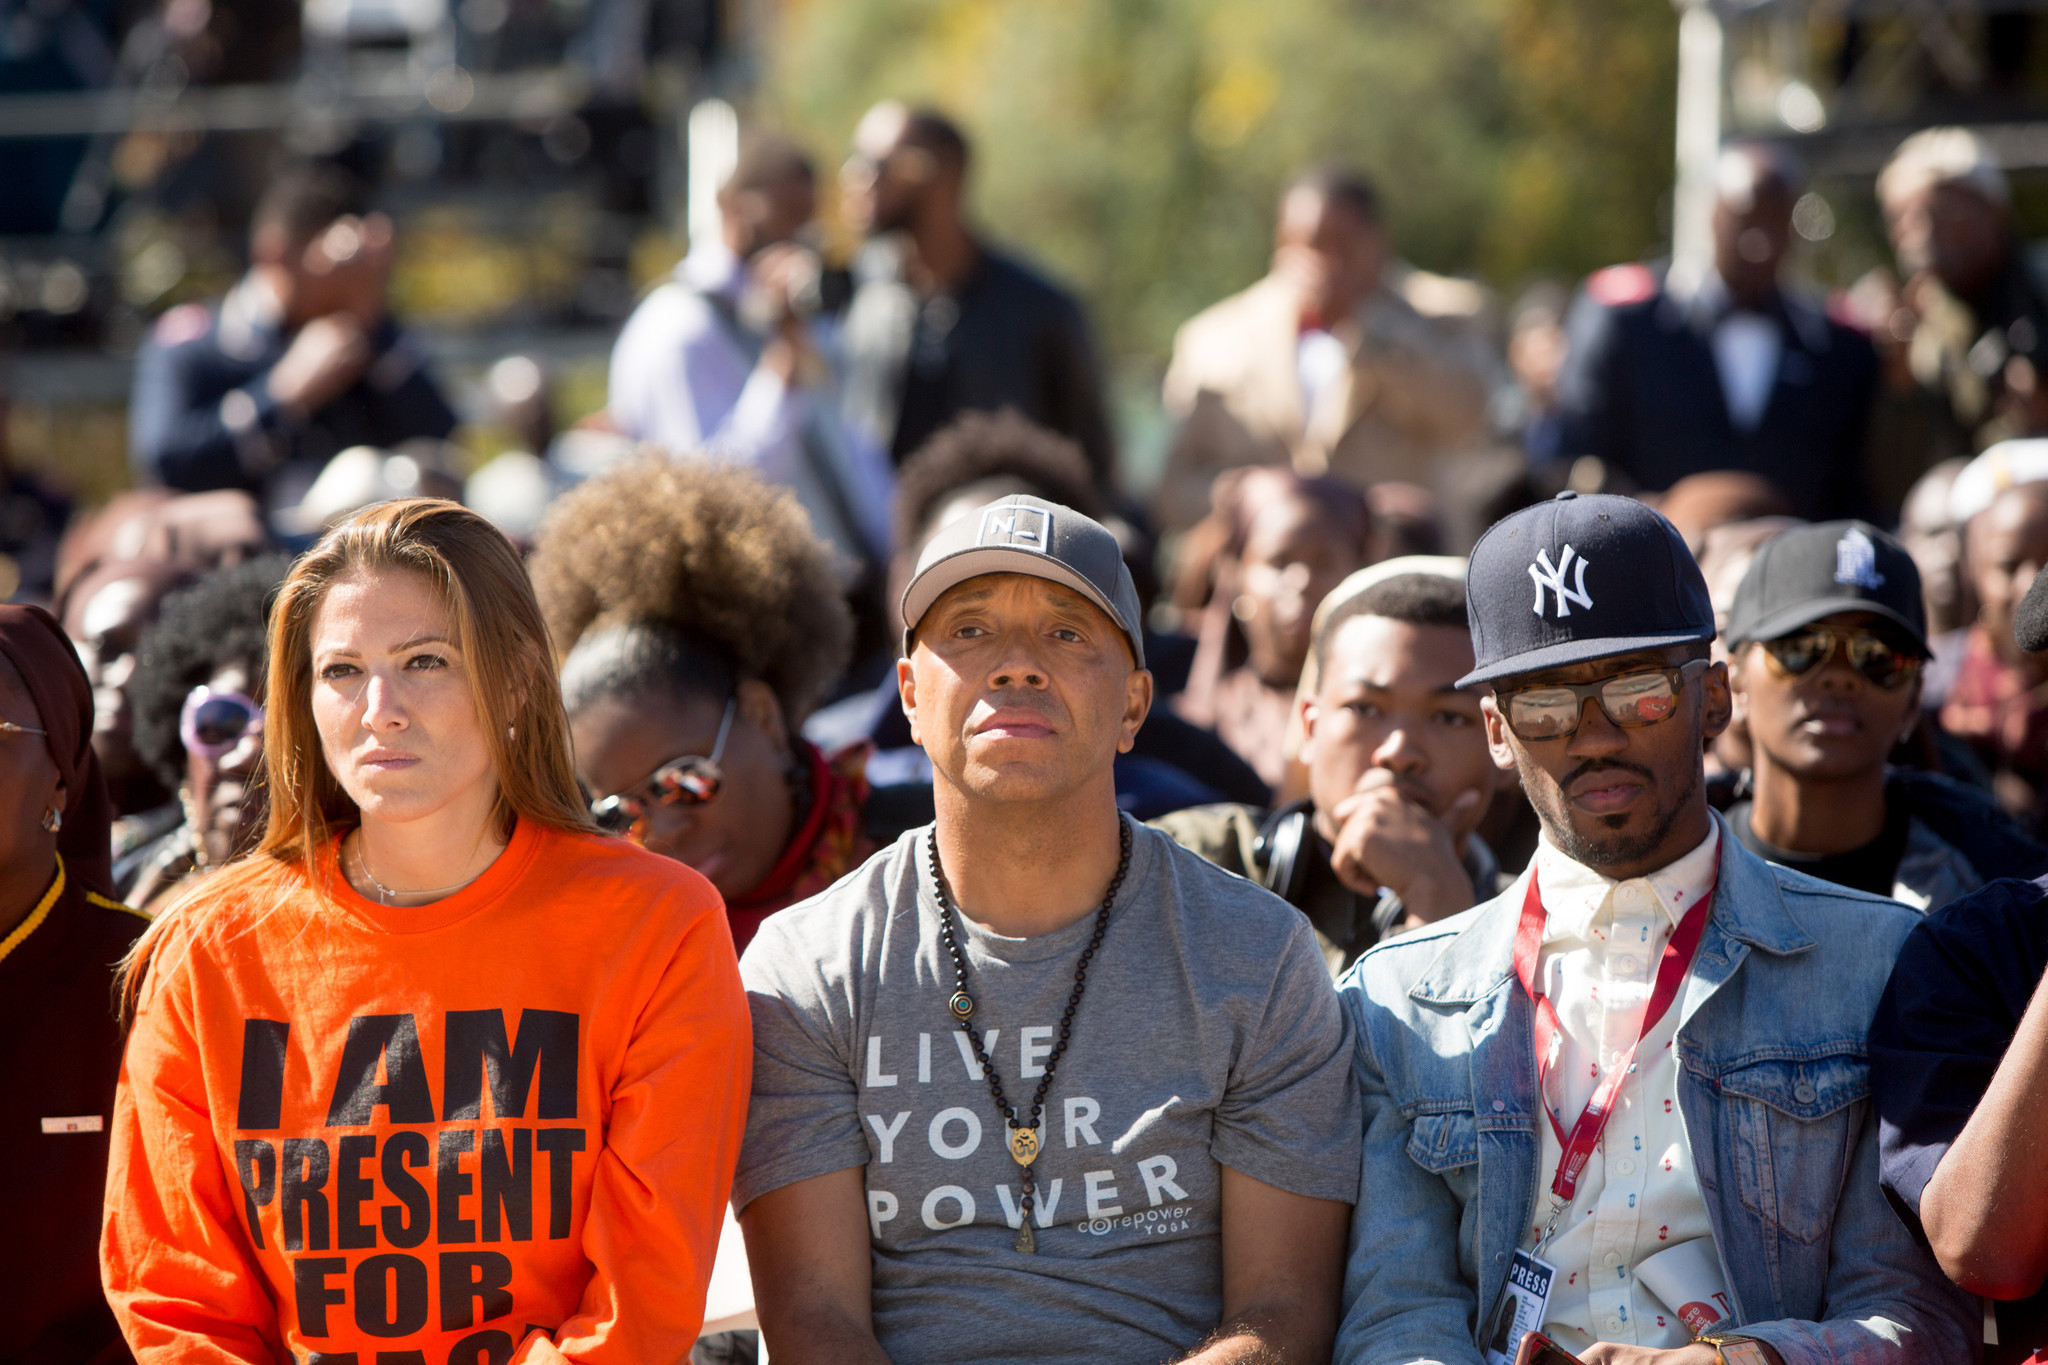 Black men call for change at Million Man March anniversary